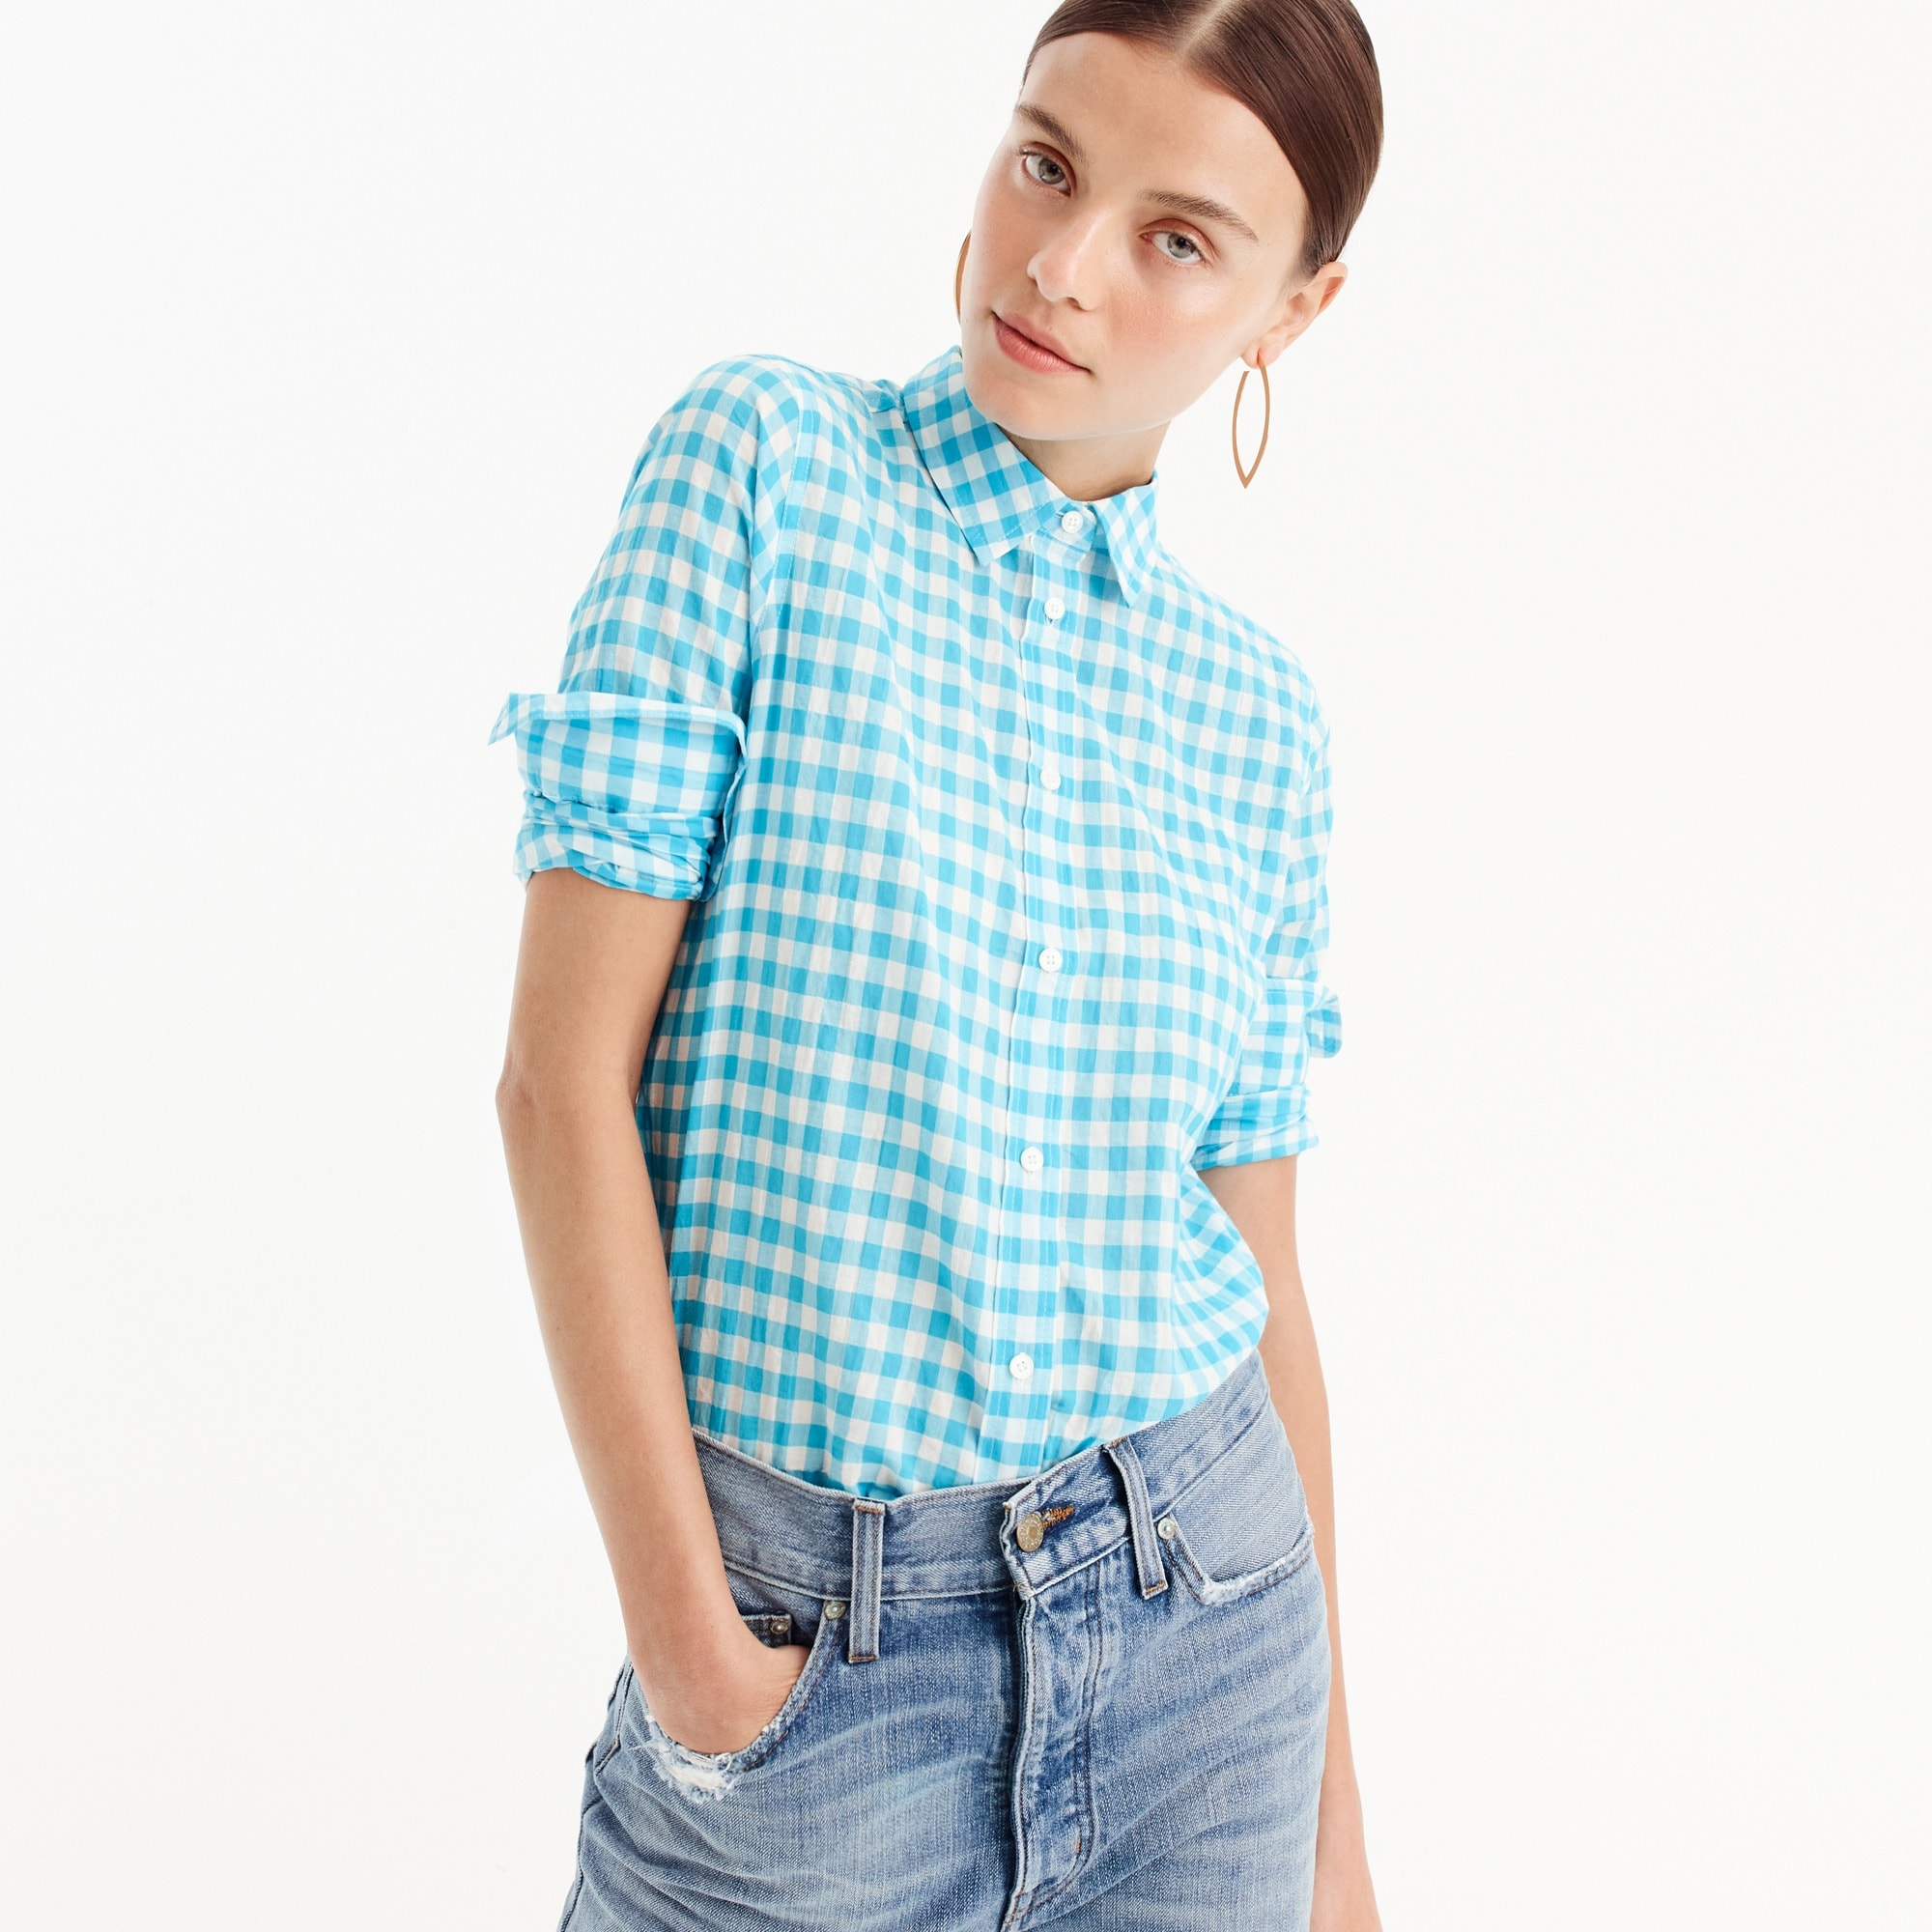 Relaxed boy shirt in crinkle gingham women shirts & tops c